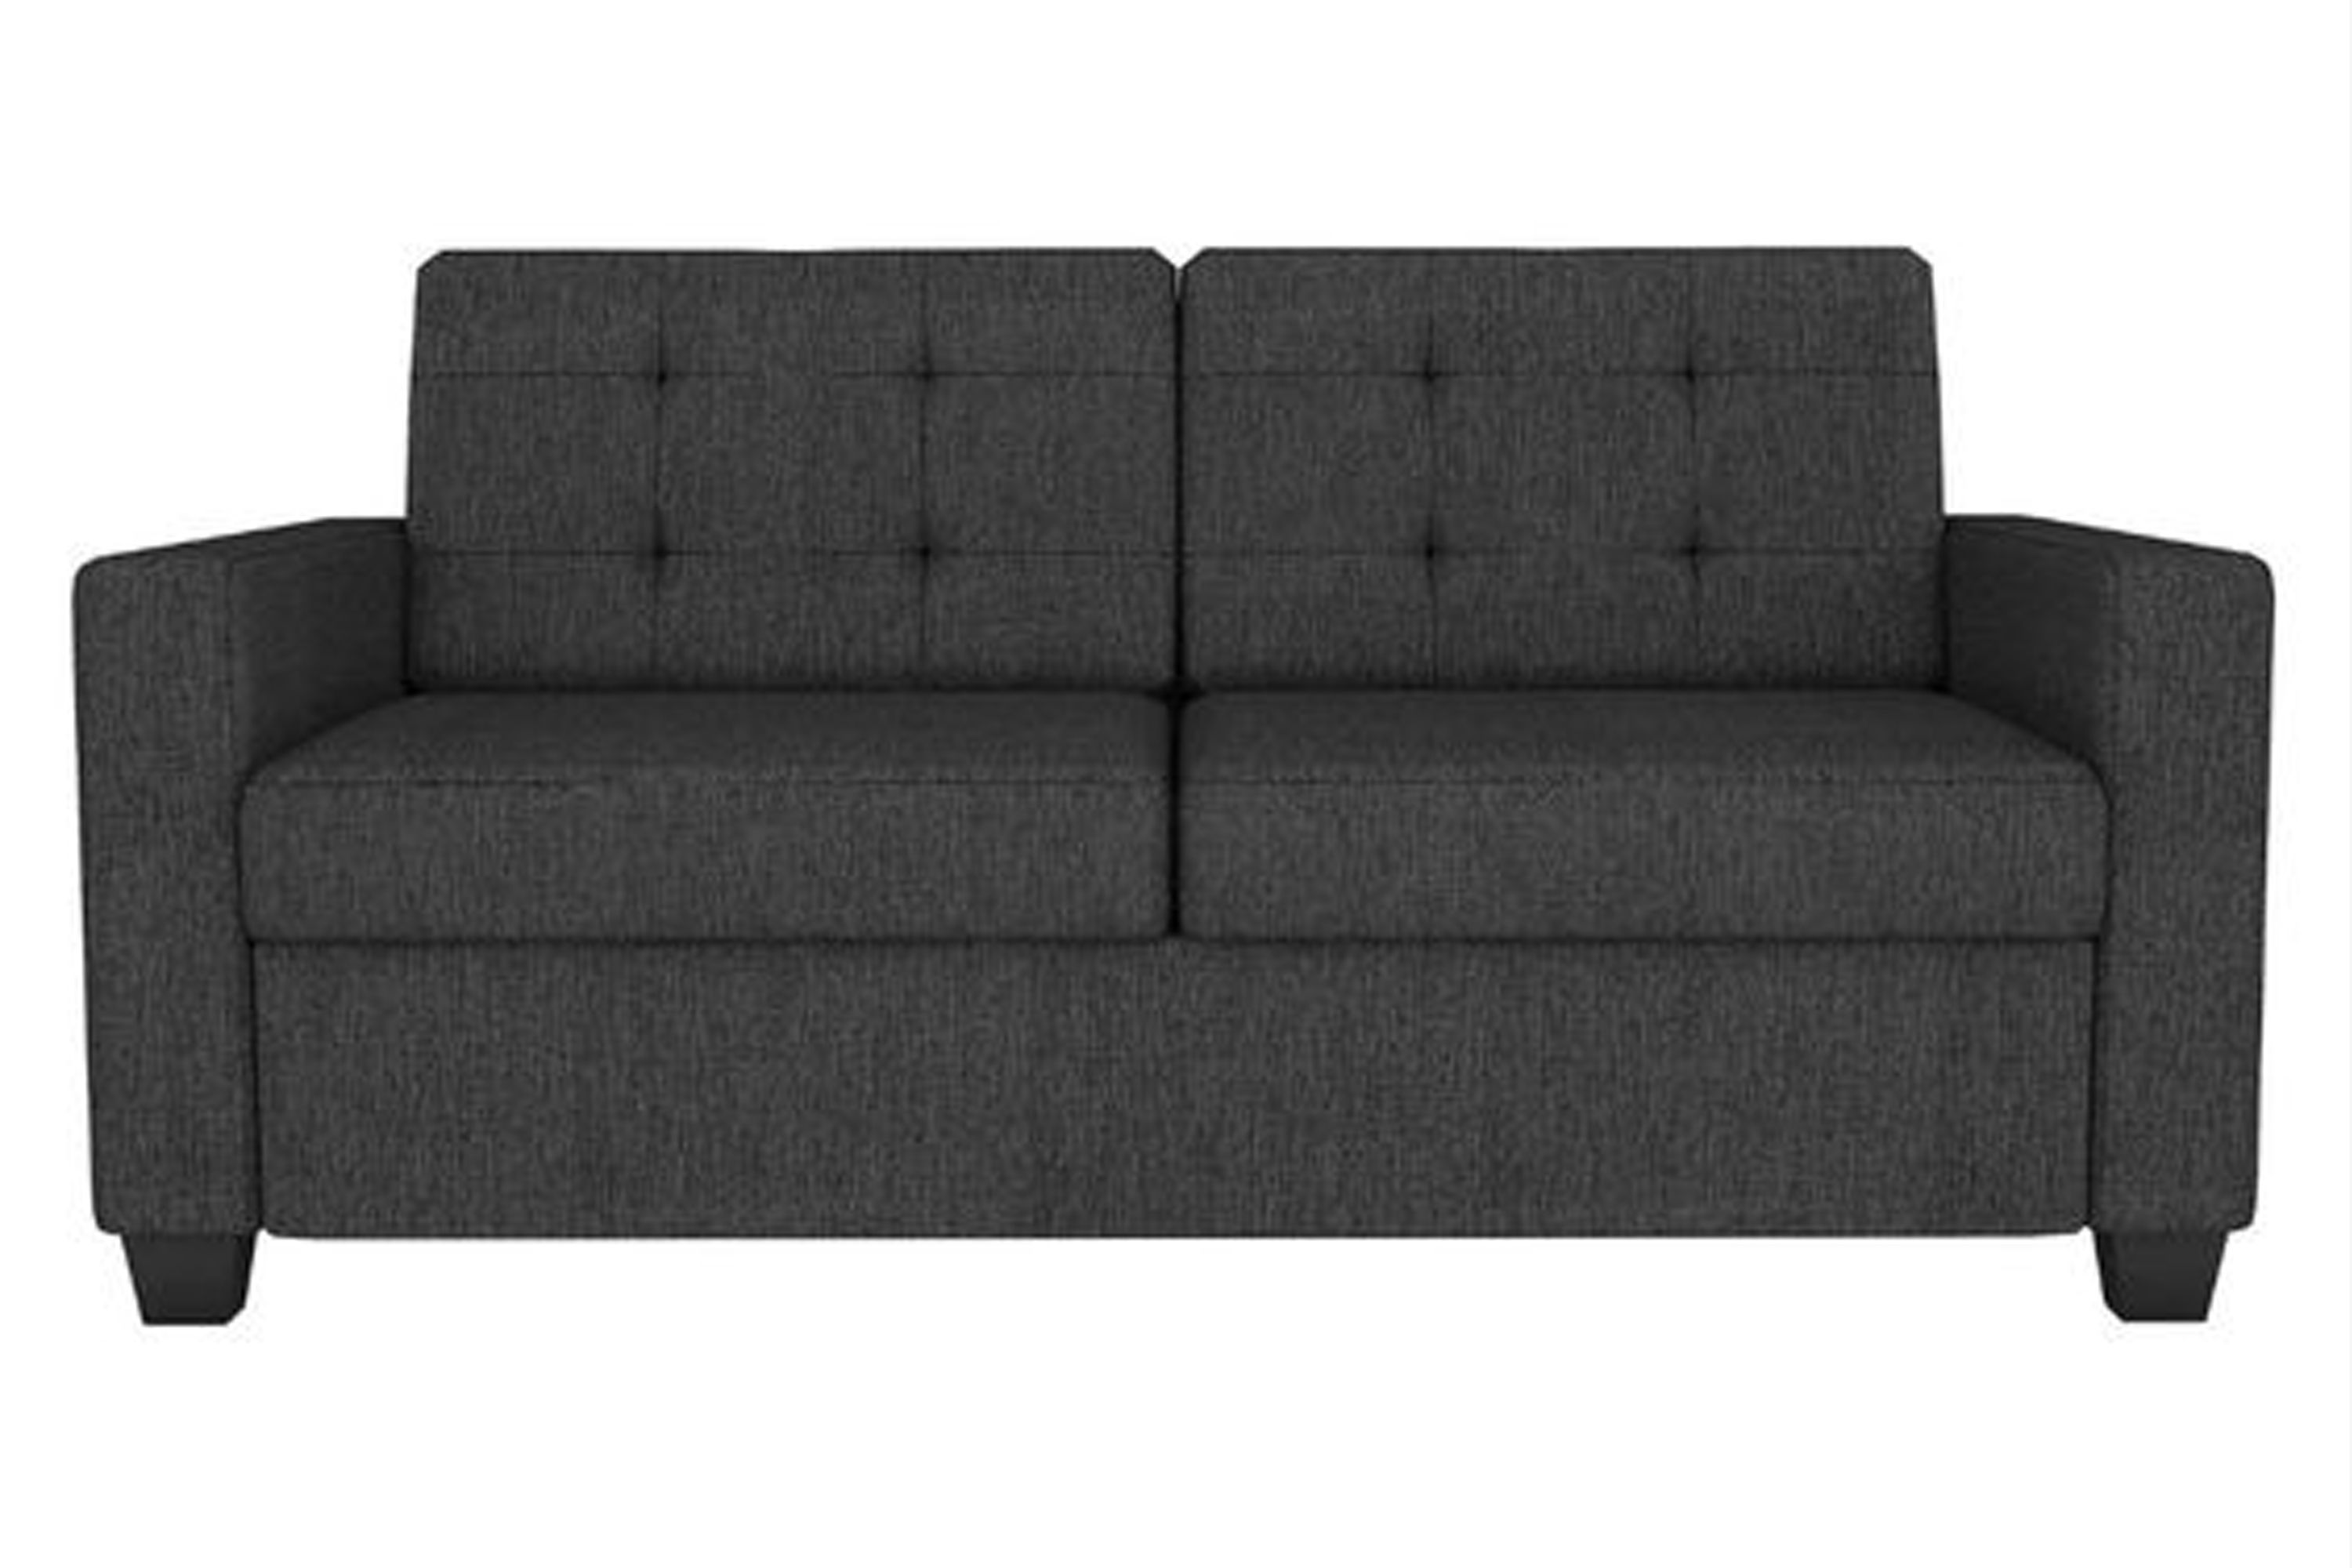 Made Sofa Reviews Signature Sleep Devon Linen Sofa Sleeper